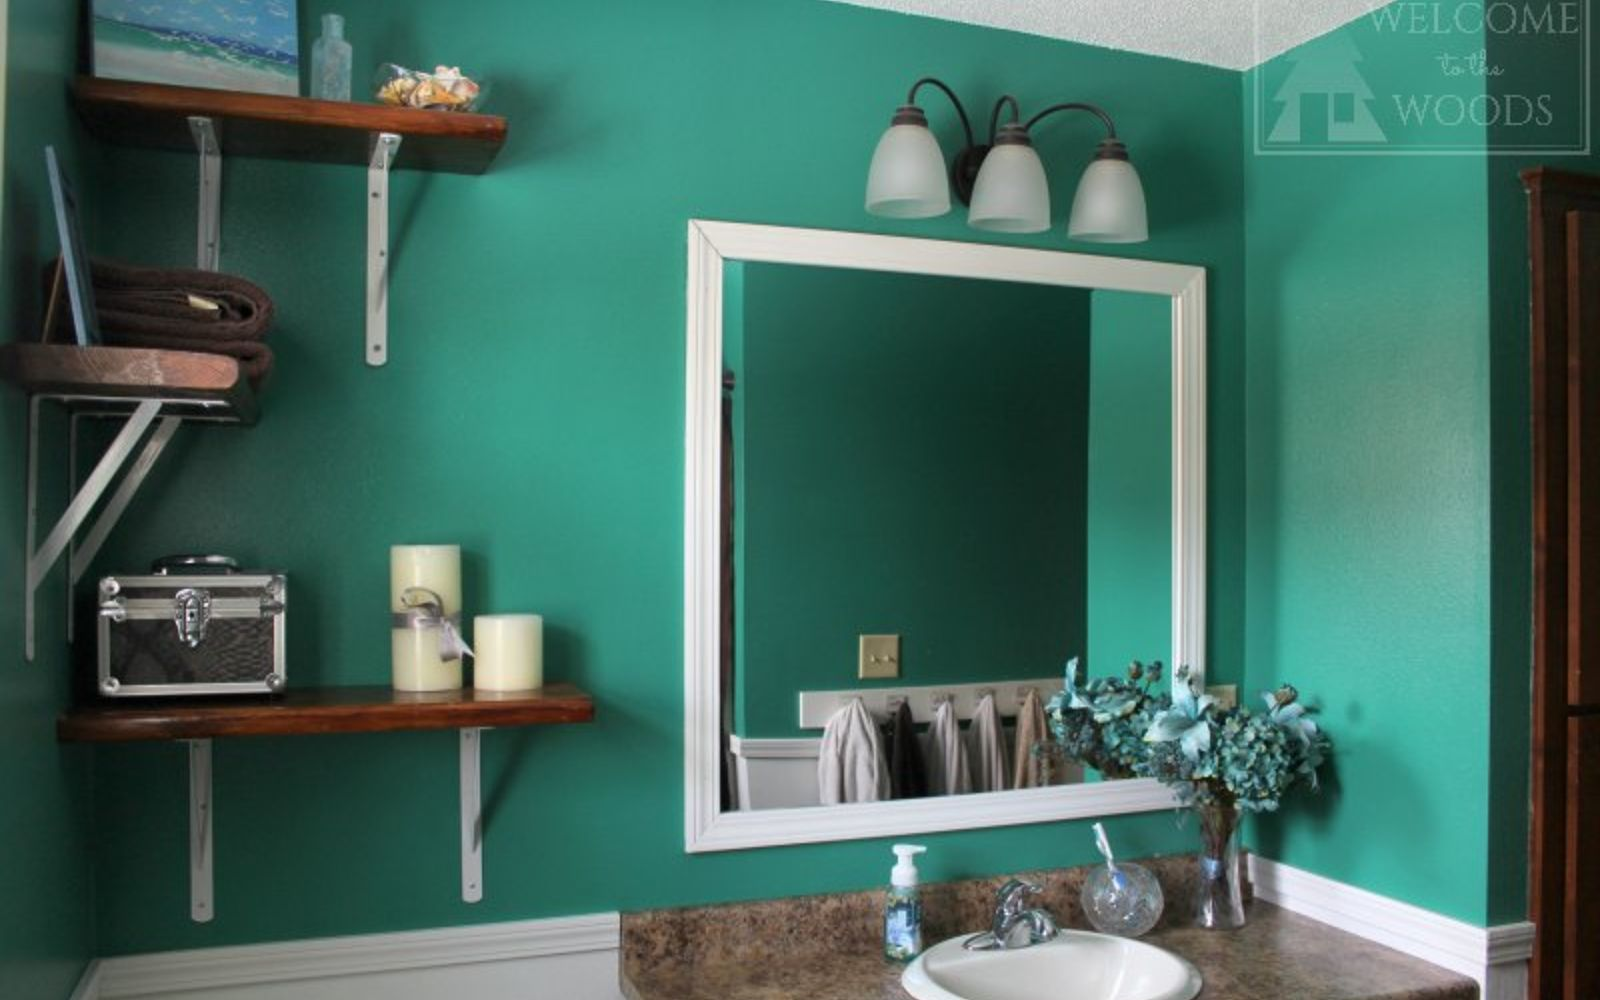 s 15 ways to make your home decor look like you spent hundreds, Get A Beautiful Bathroom For 27